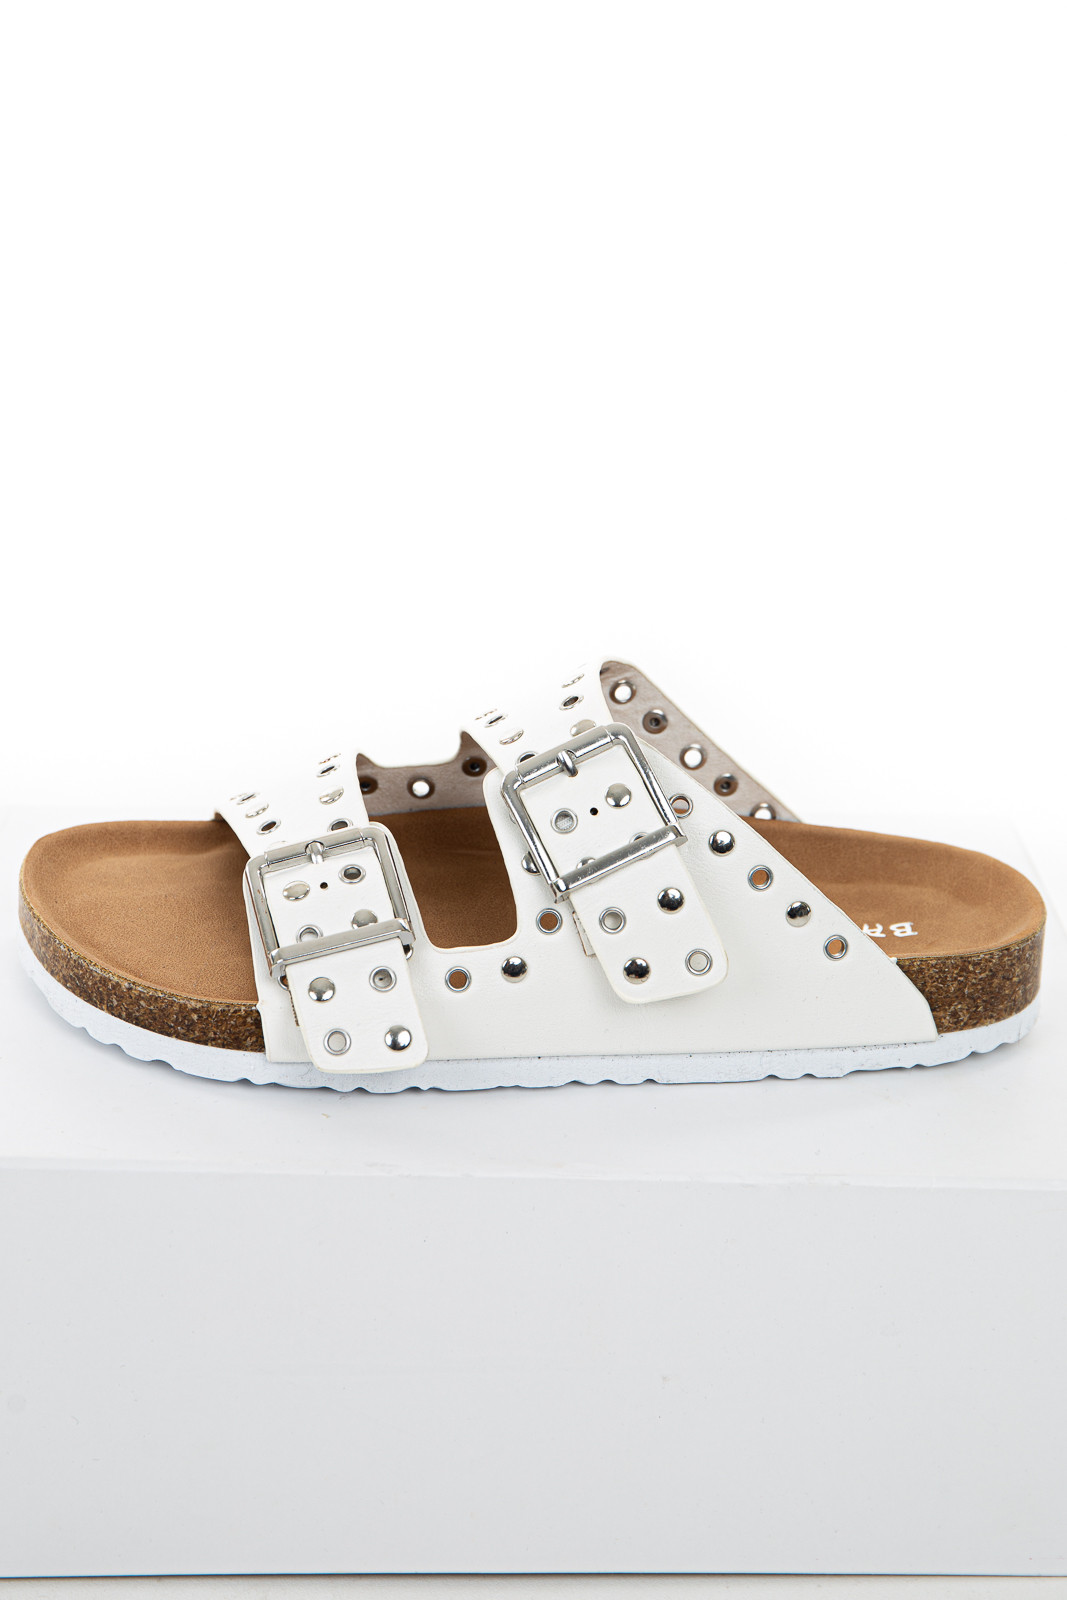 Ivory Sandals with Silver Stud and Buckle Details